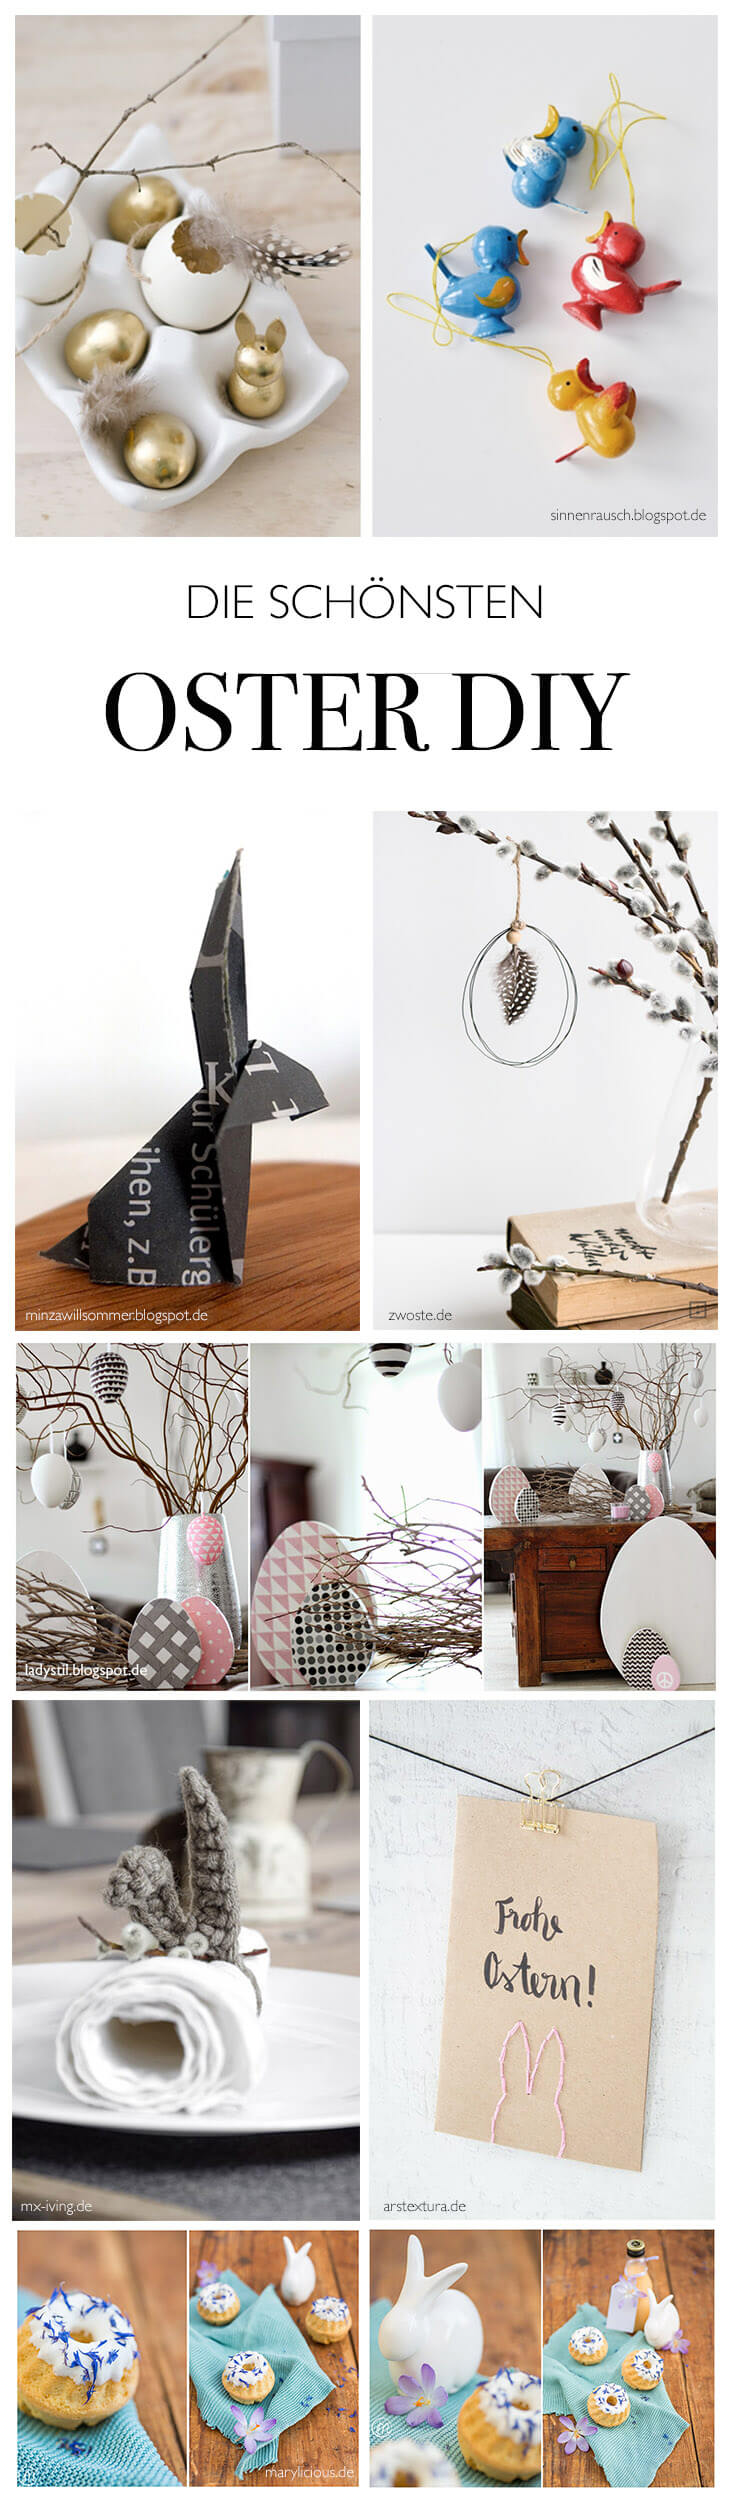 Die Schonsten Oster Deko Diy Linda Loves Diy Blog Diy